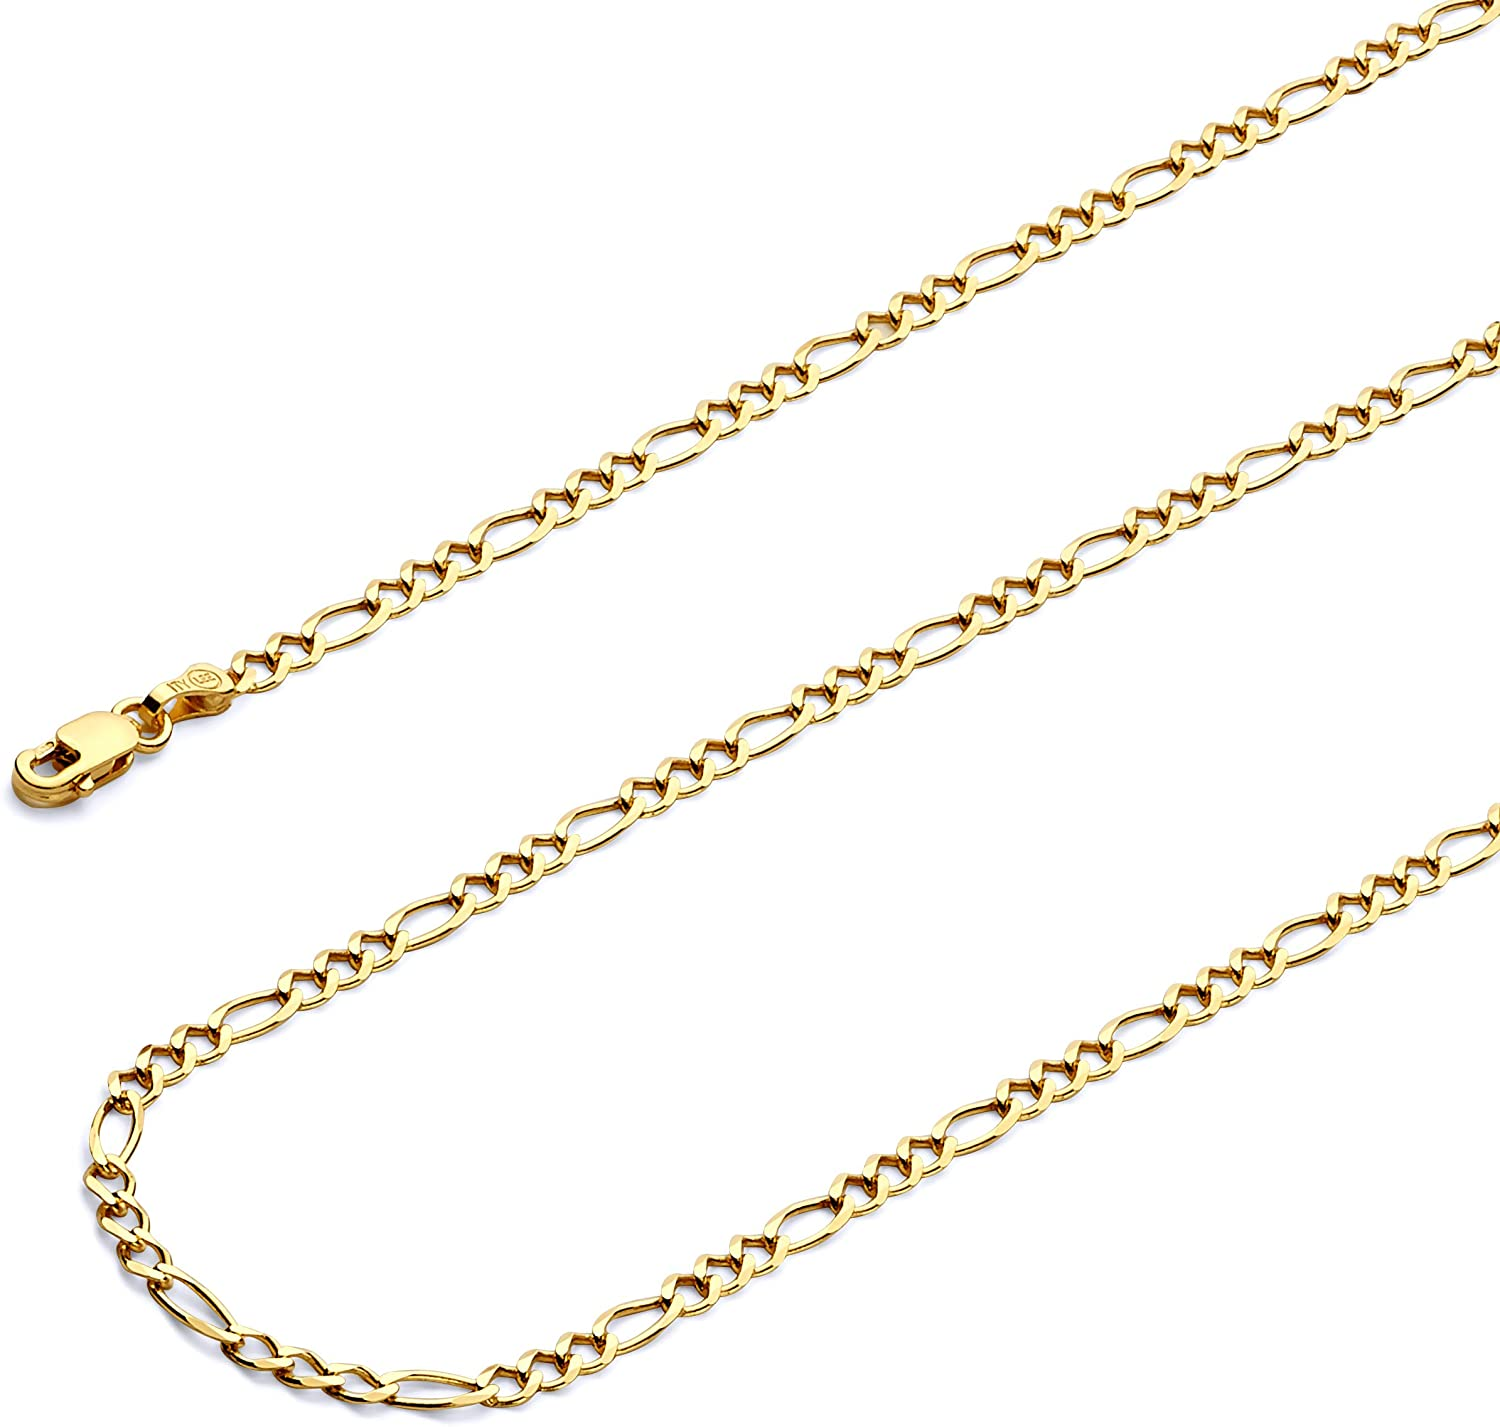 Wellingsale 14k Yellow Gold Polished Solid 2.5mm Figaro 3+1 Concave Chain Necklace